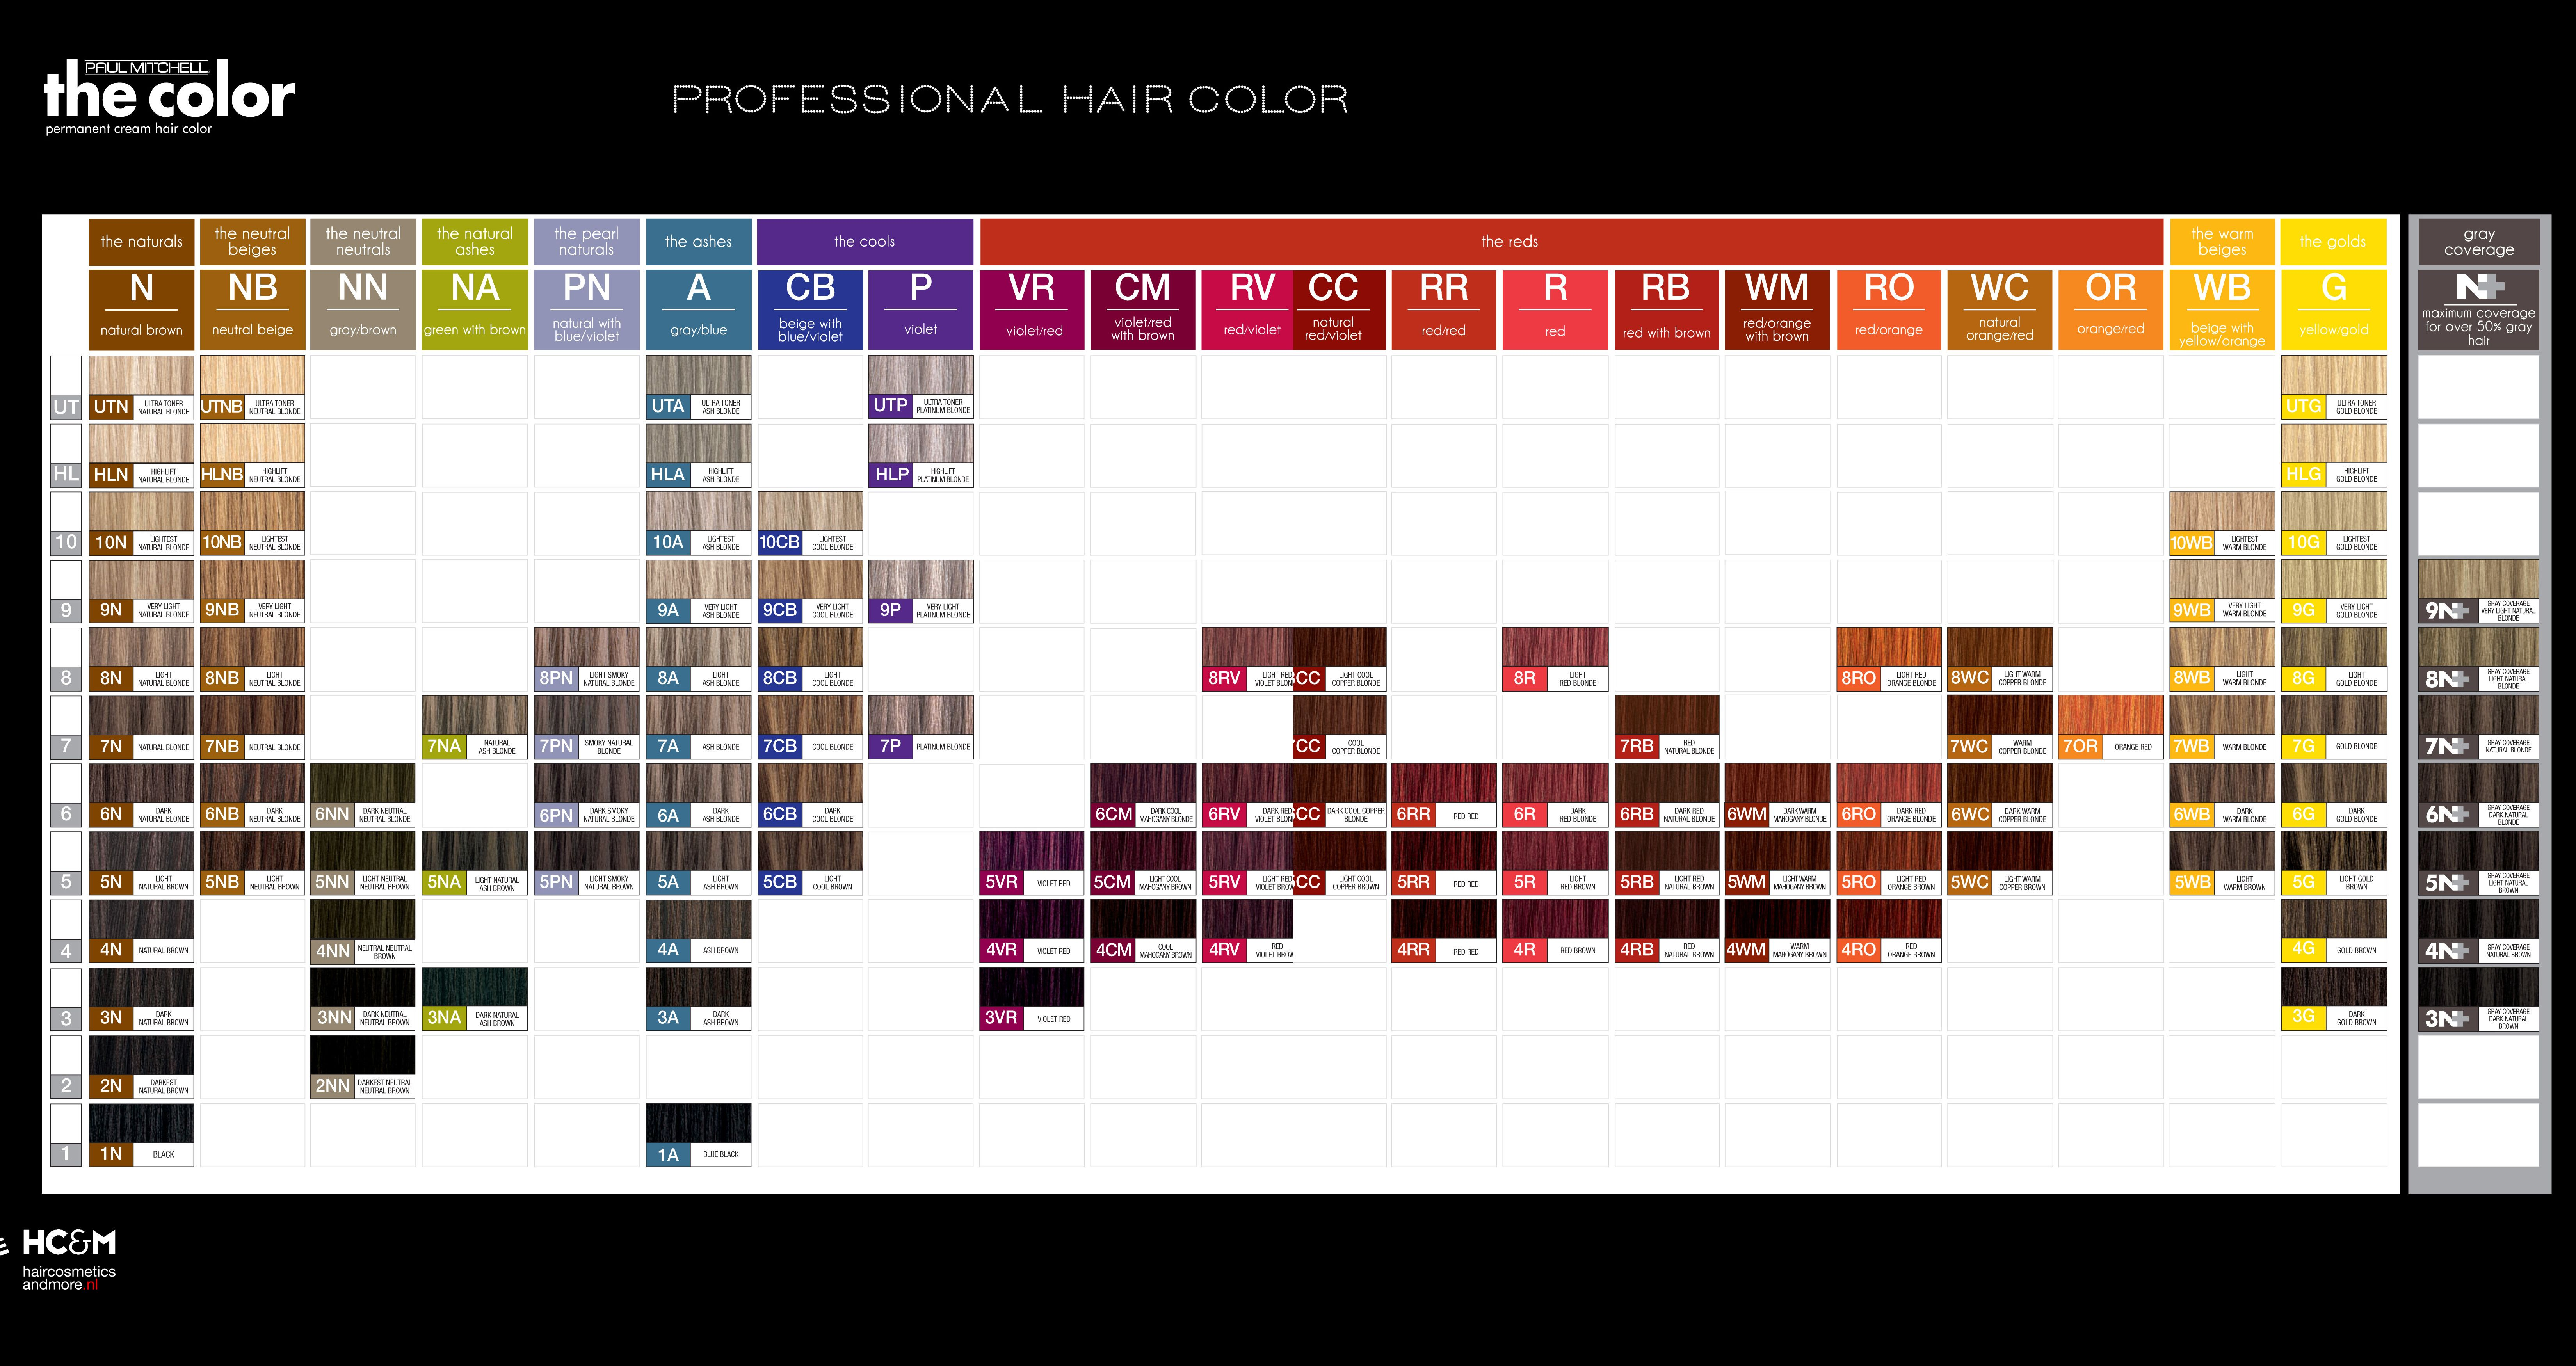 paul mitchell the color professional hair color swatch